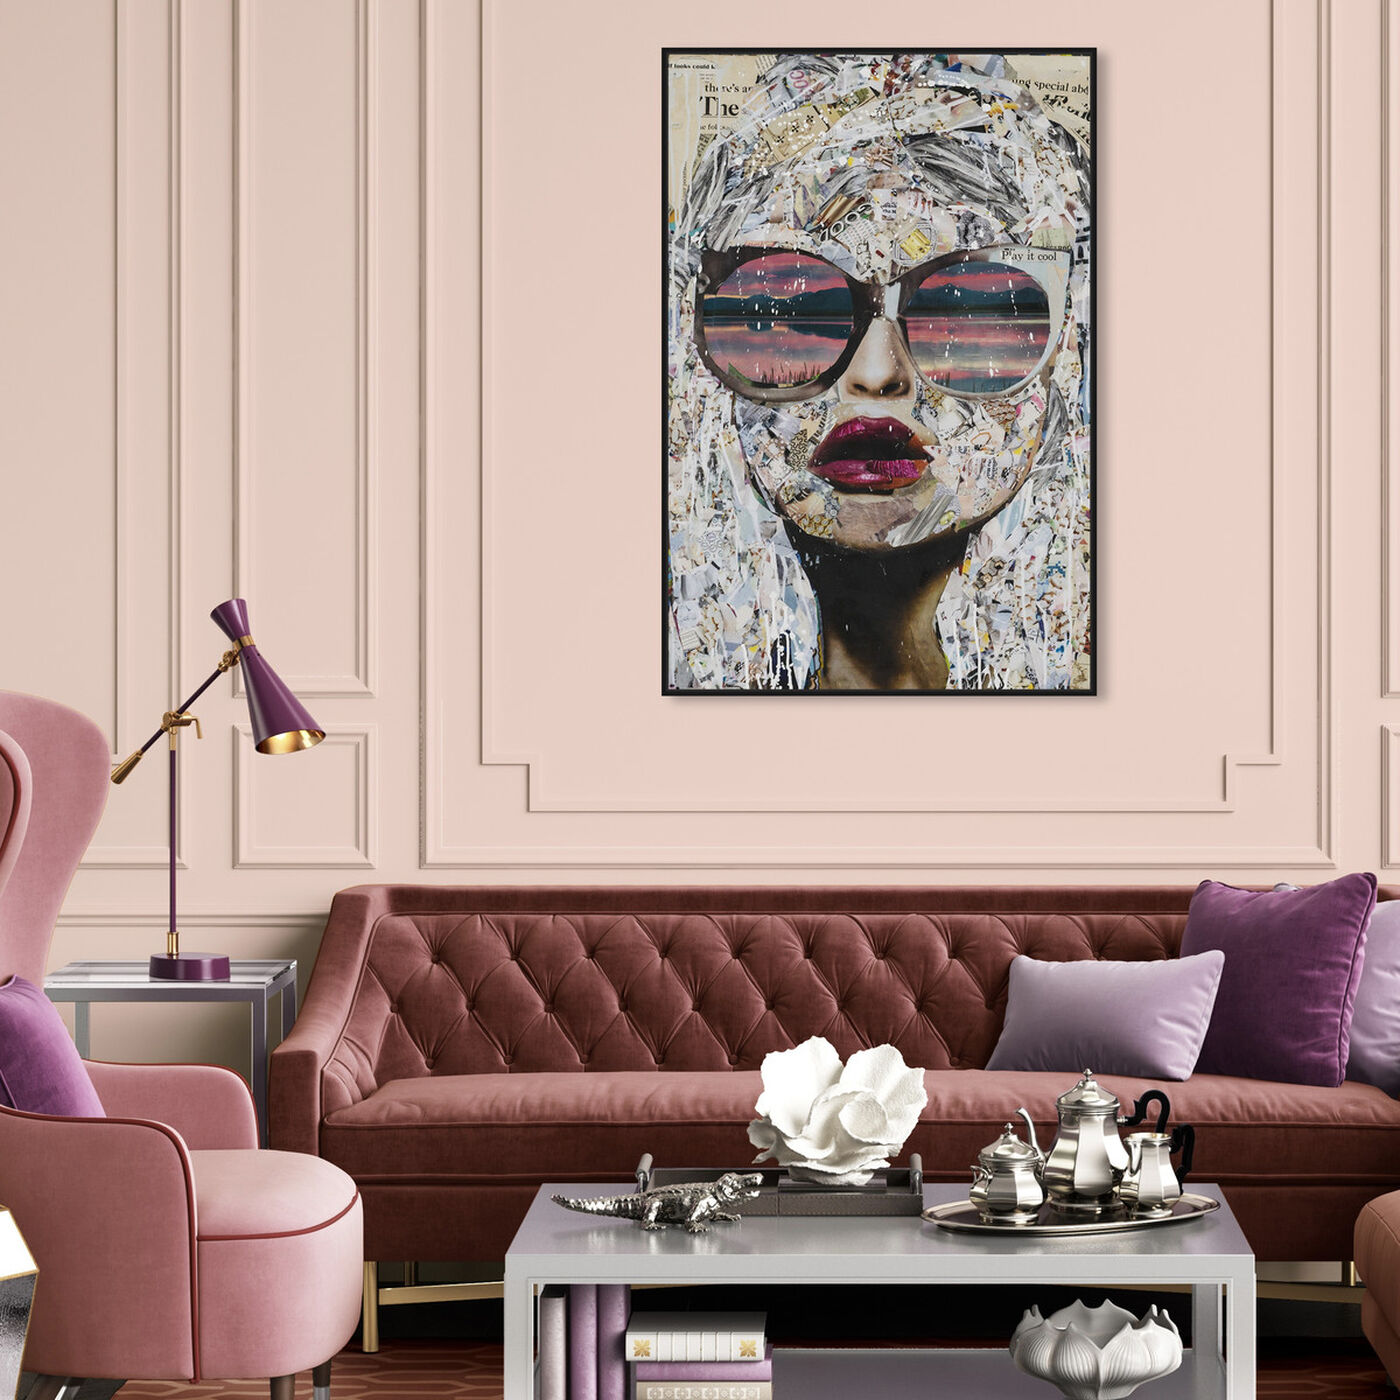 Hanging view of Katy Hirschfeld - Timing is Pink Too featuring fashion and glam and portraits art.